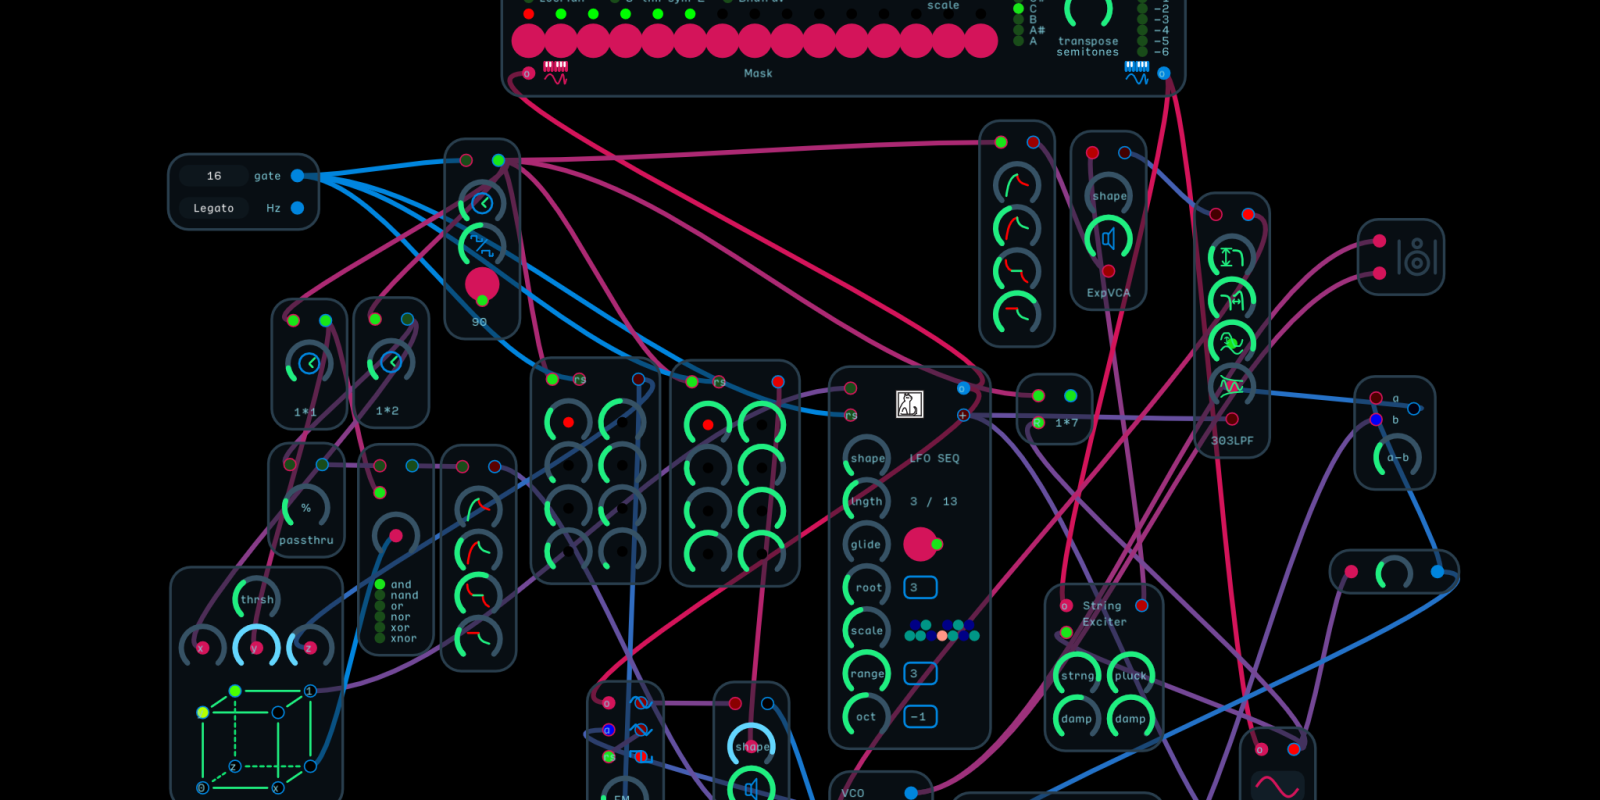 Build your own synths & sounds in Audulus for iOS, now matching low at $10 (Reg. $20)